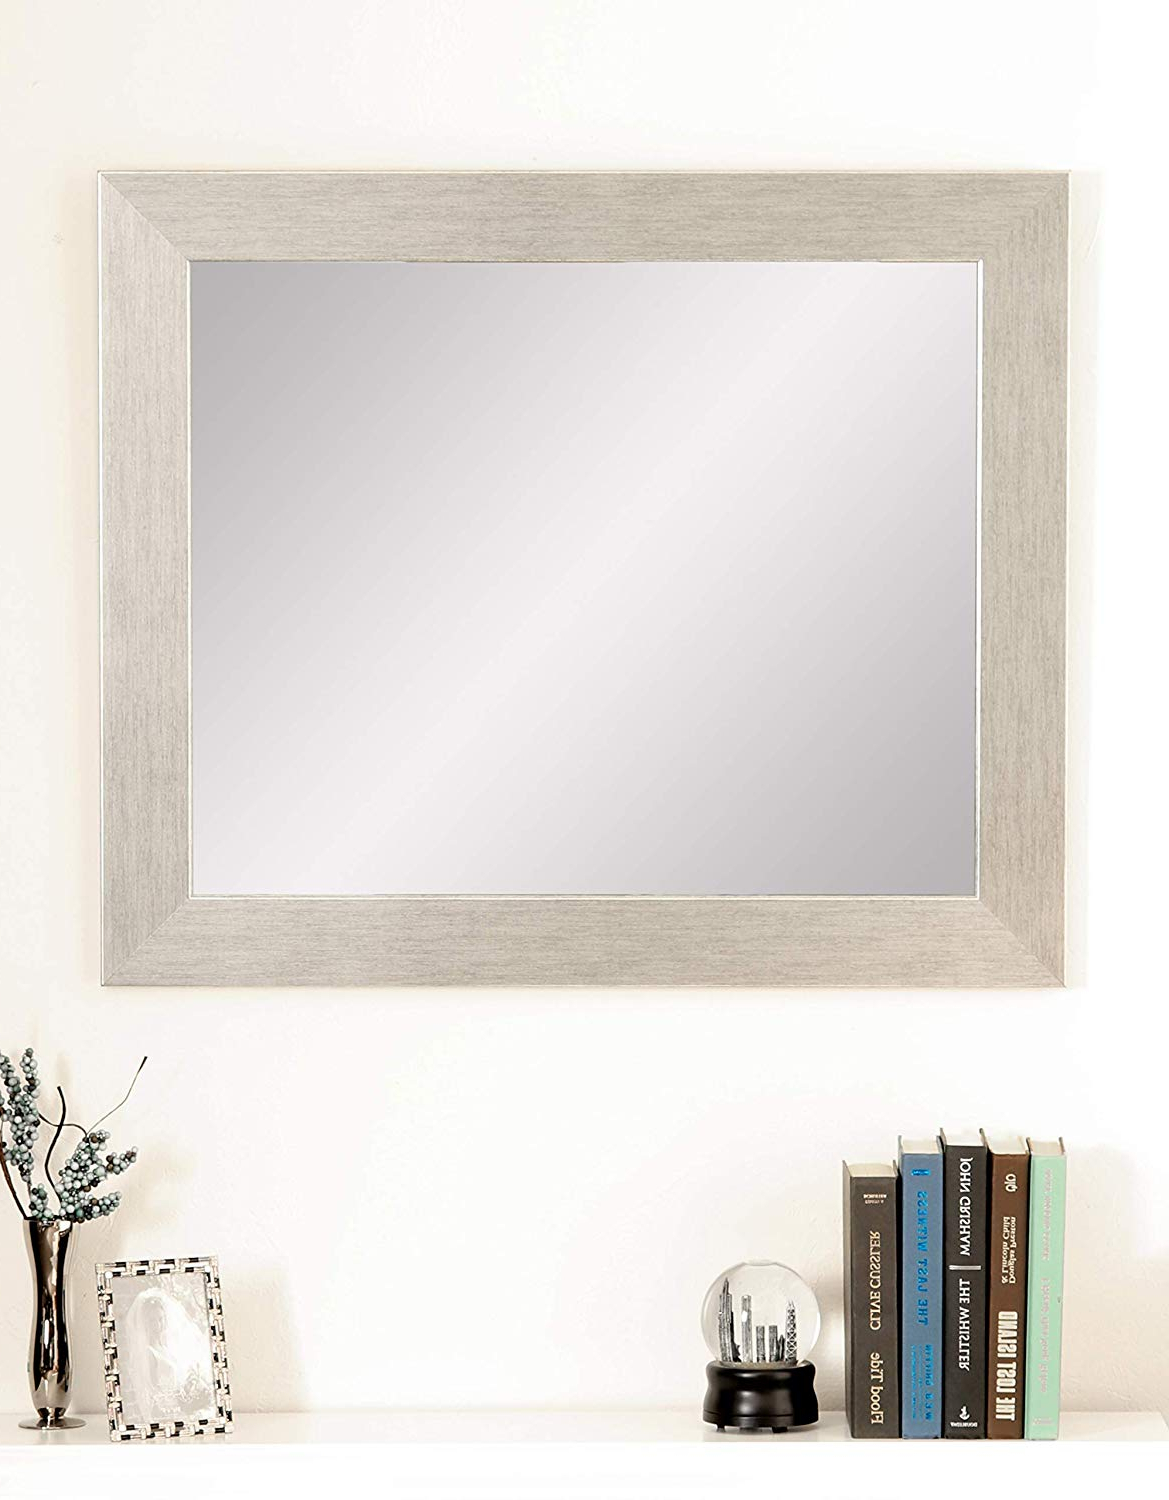 "Favorite Brandtworks Stainless Grain Wall Mirror, 32"" X 38"", Flat Brushed Silver Pertaining To Flat Wall Mirrors (View 6 of 20)"